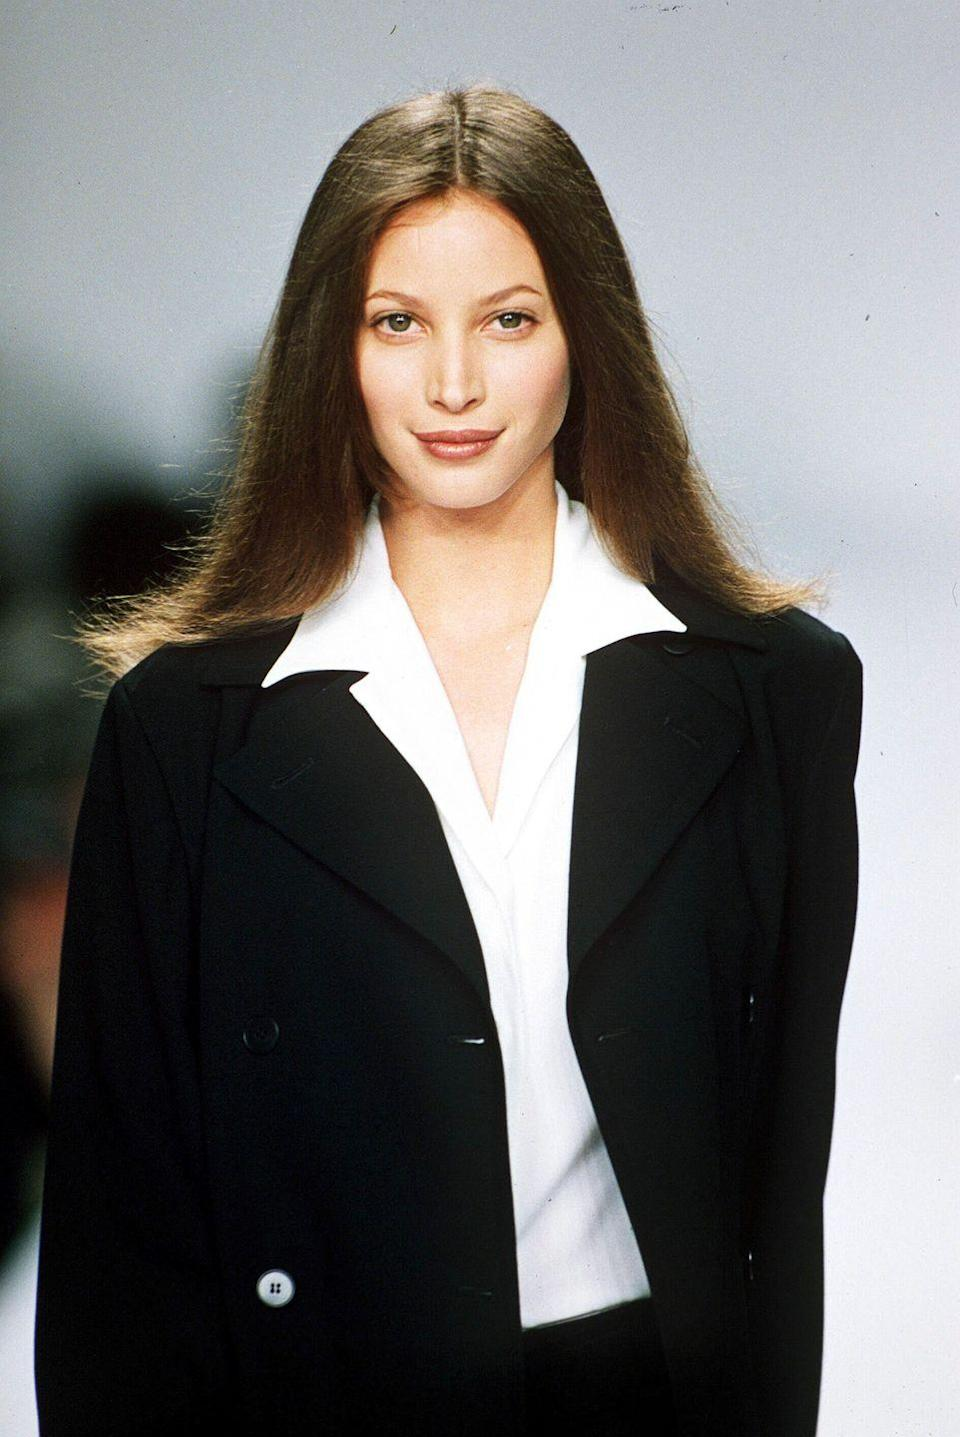 """<p>Along with Evangelista and Campbell, Turlington rounded out what the fashion industry coined the """"Holy Trinity."""" Born in Oakland, California, she started modeling locally in Florida. But it was not until moving to New York at 18 when her dominance at the top of the modeling world solidified. Over the years, Turlington left to get an education, graduating cum laude from the Columbia University Mailman School of Public Health. She now focuses her efforts on Every Mother Counts, an organization that, according to its mission statement, """"make pregnancy and childbirth safe for every mother, everywhere.""""</p>"""